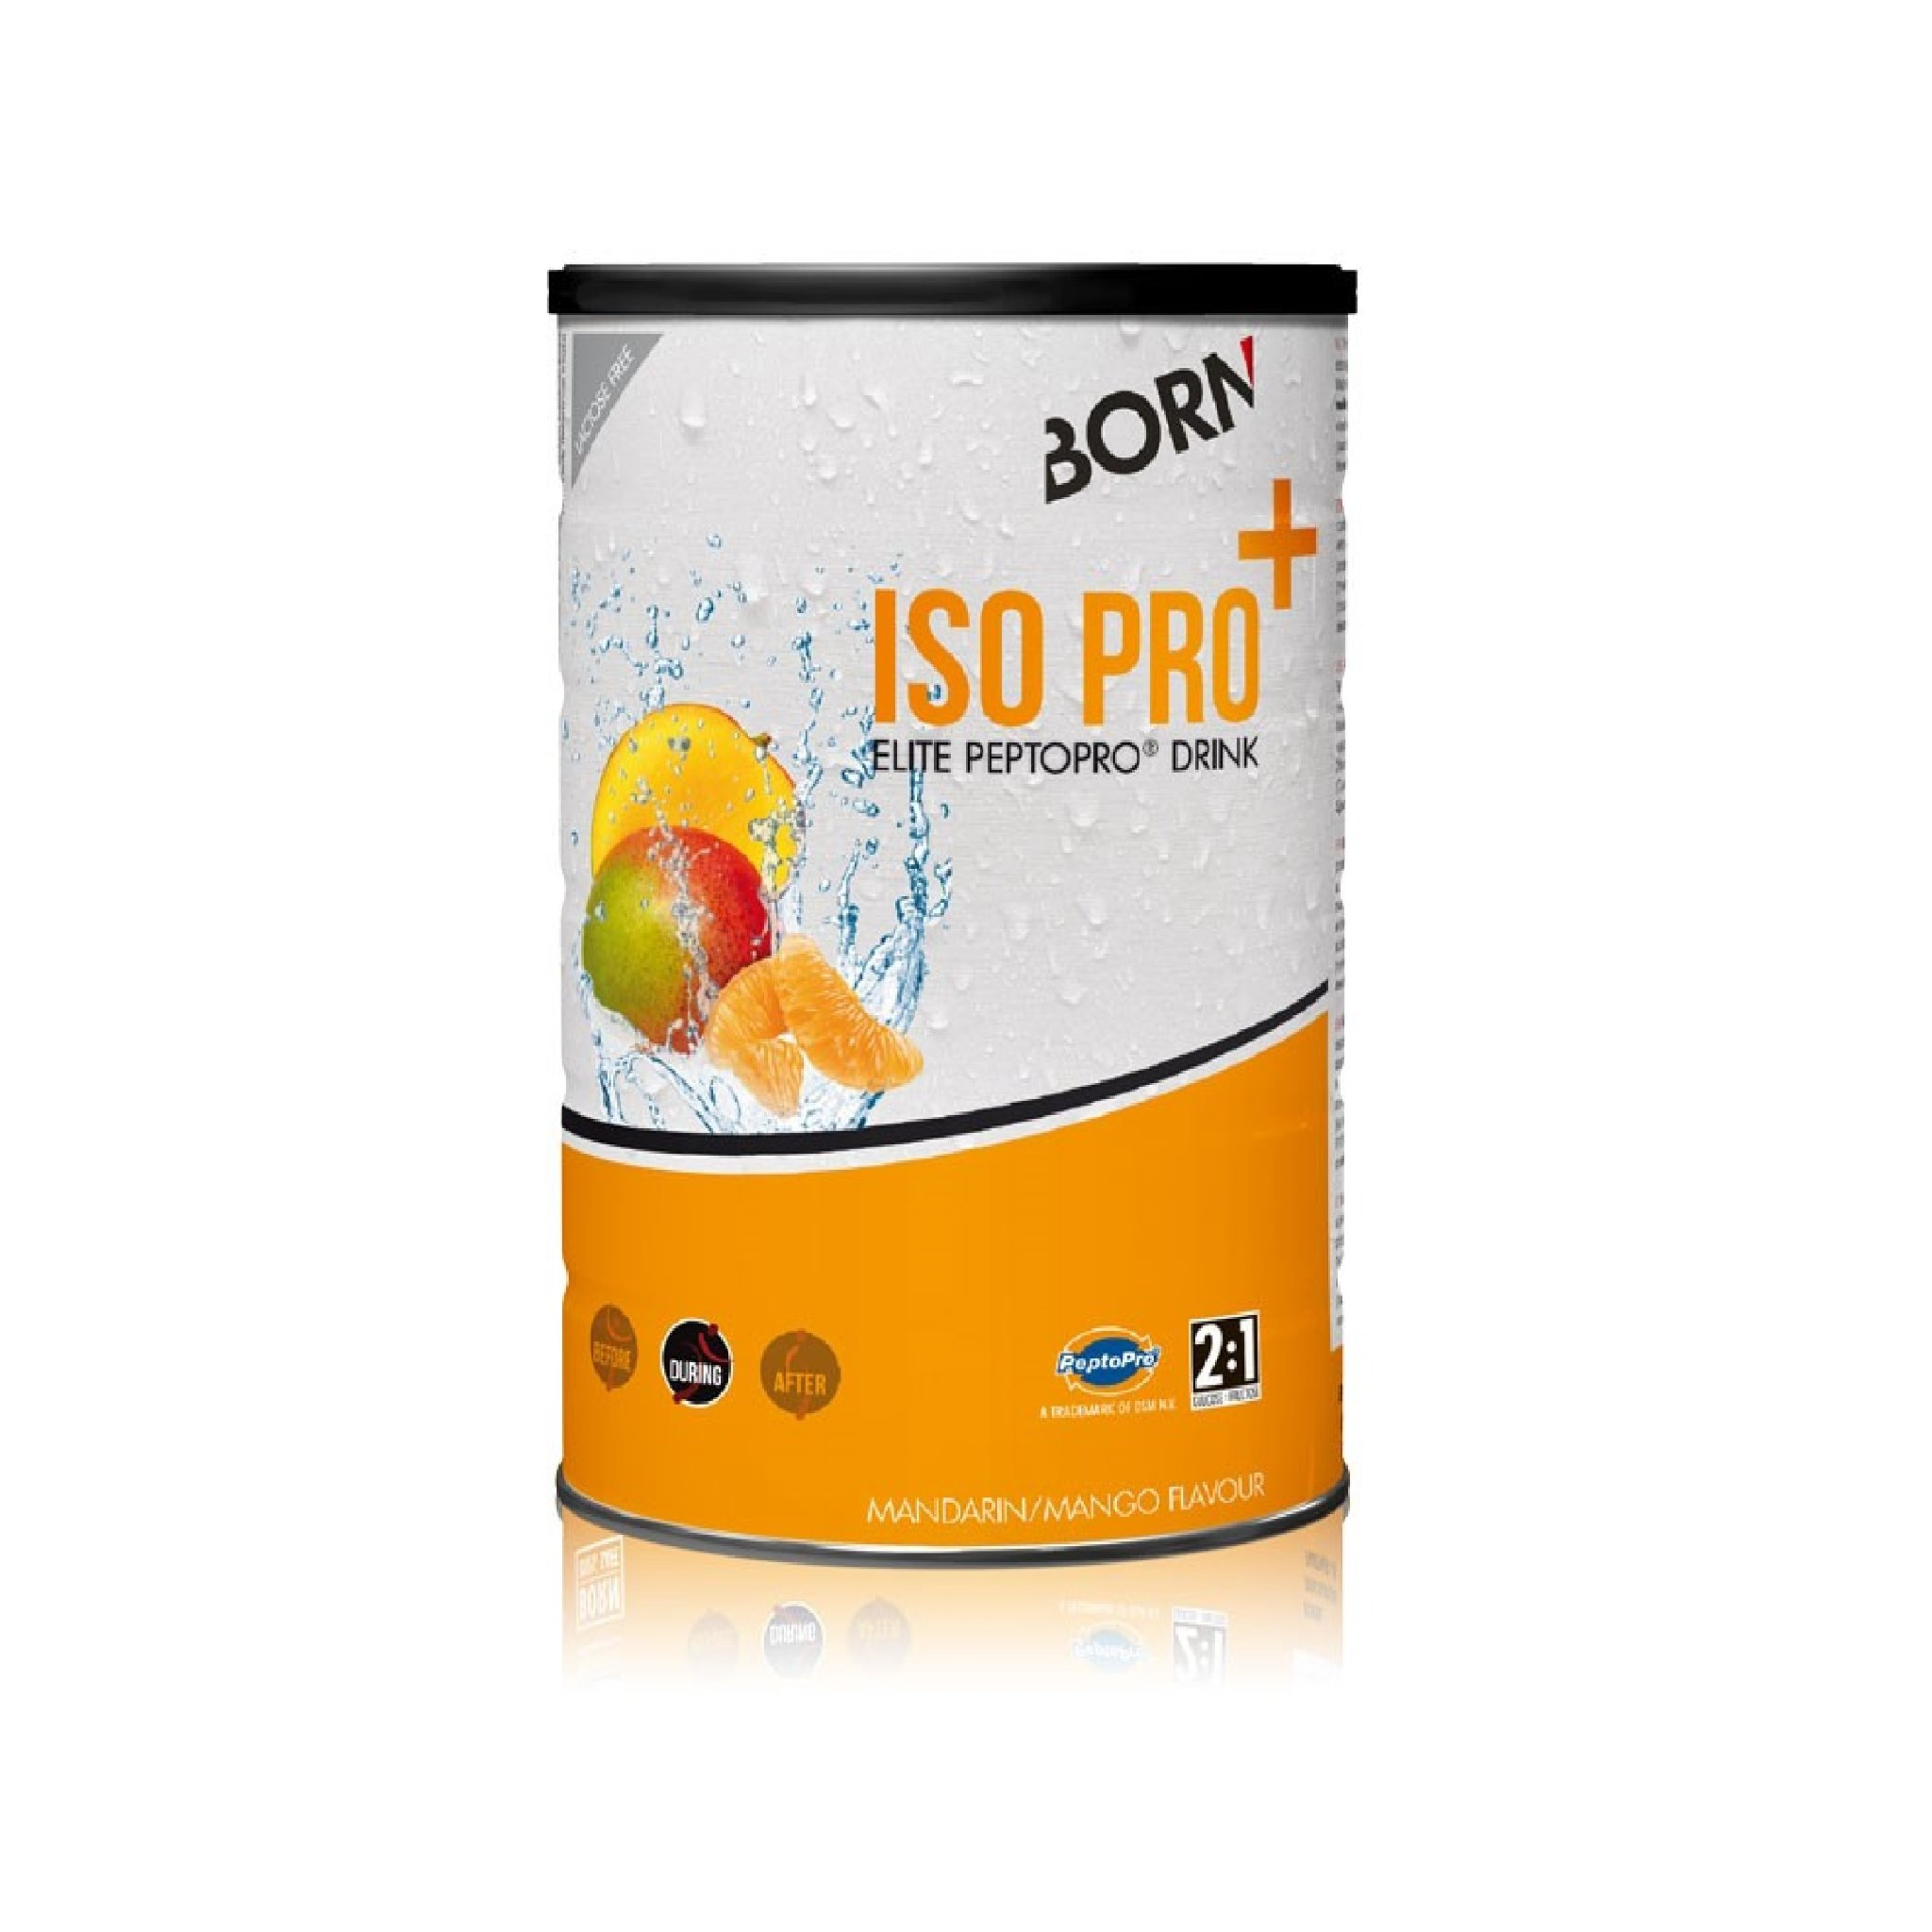 BORN ISO PRO+ Can (400g Powder)